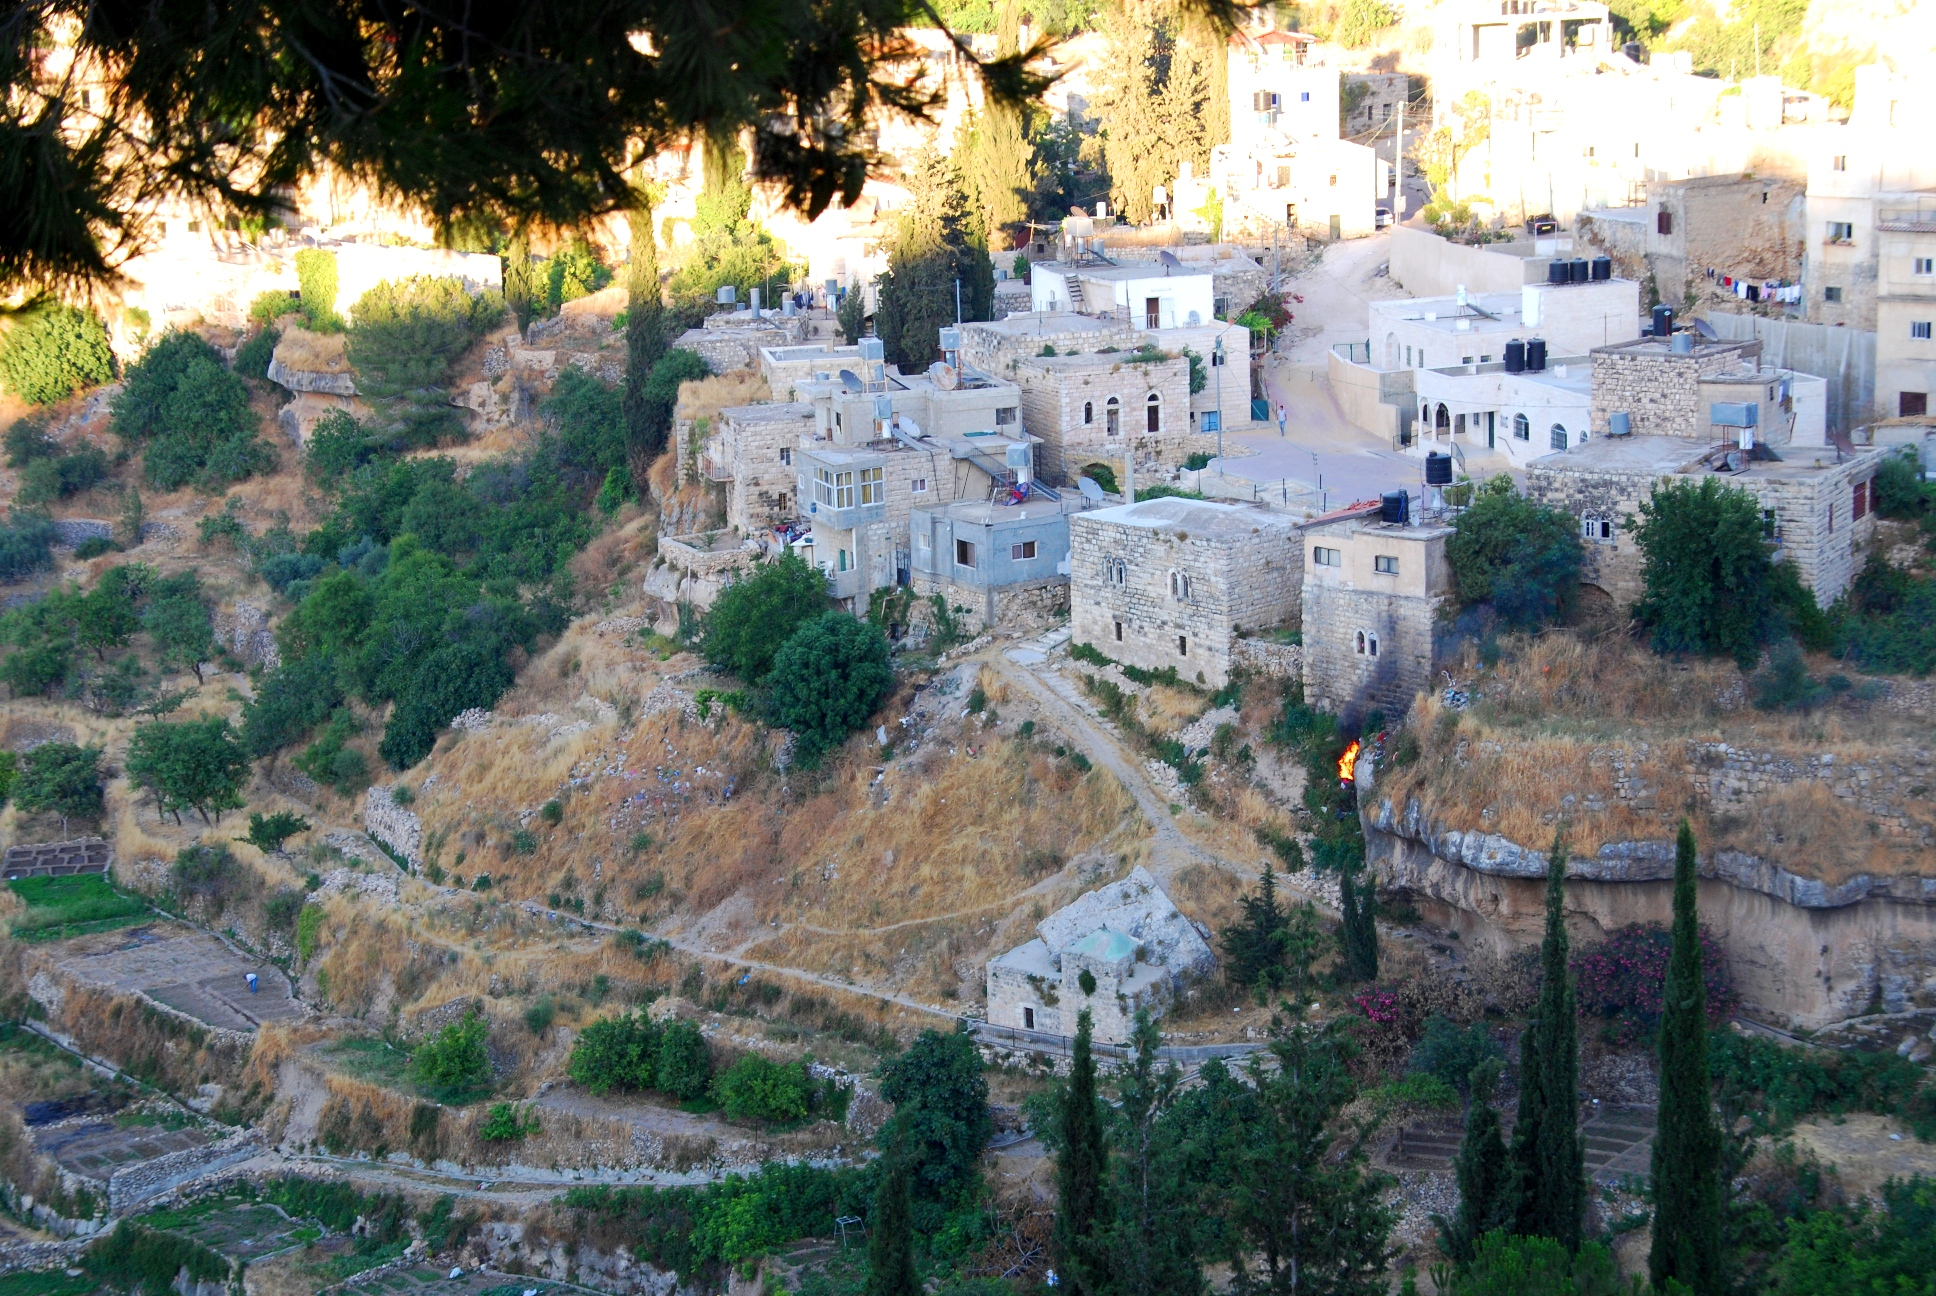 The village of Battir sits on top of a terrace farming system that is unique in the OPT